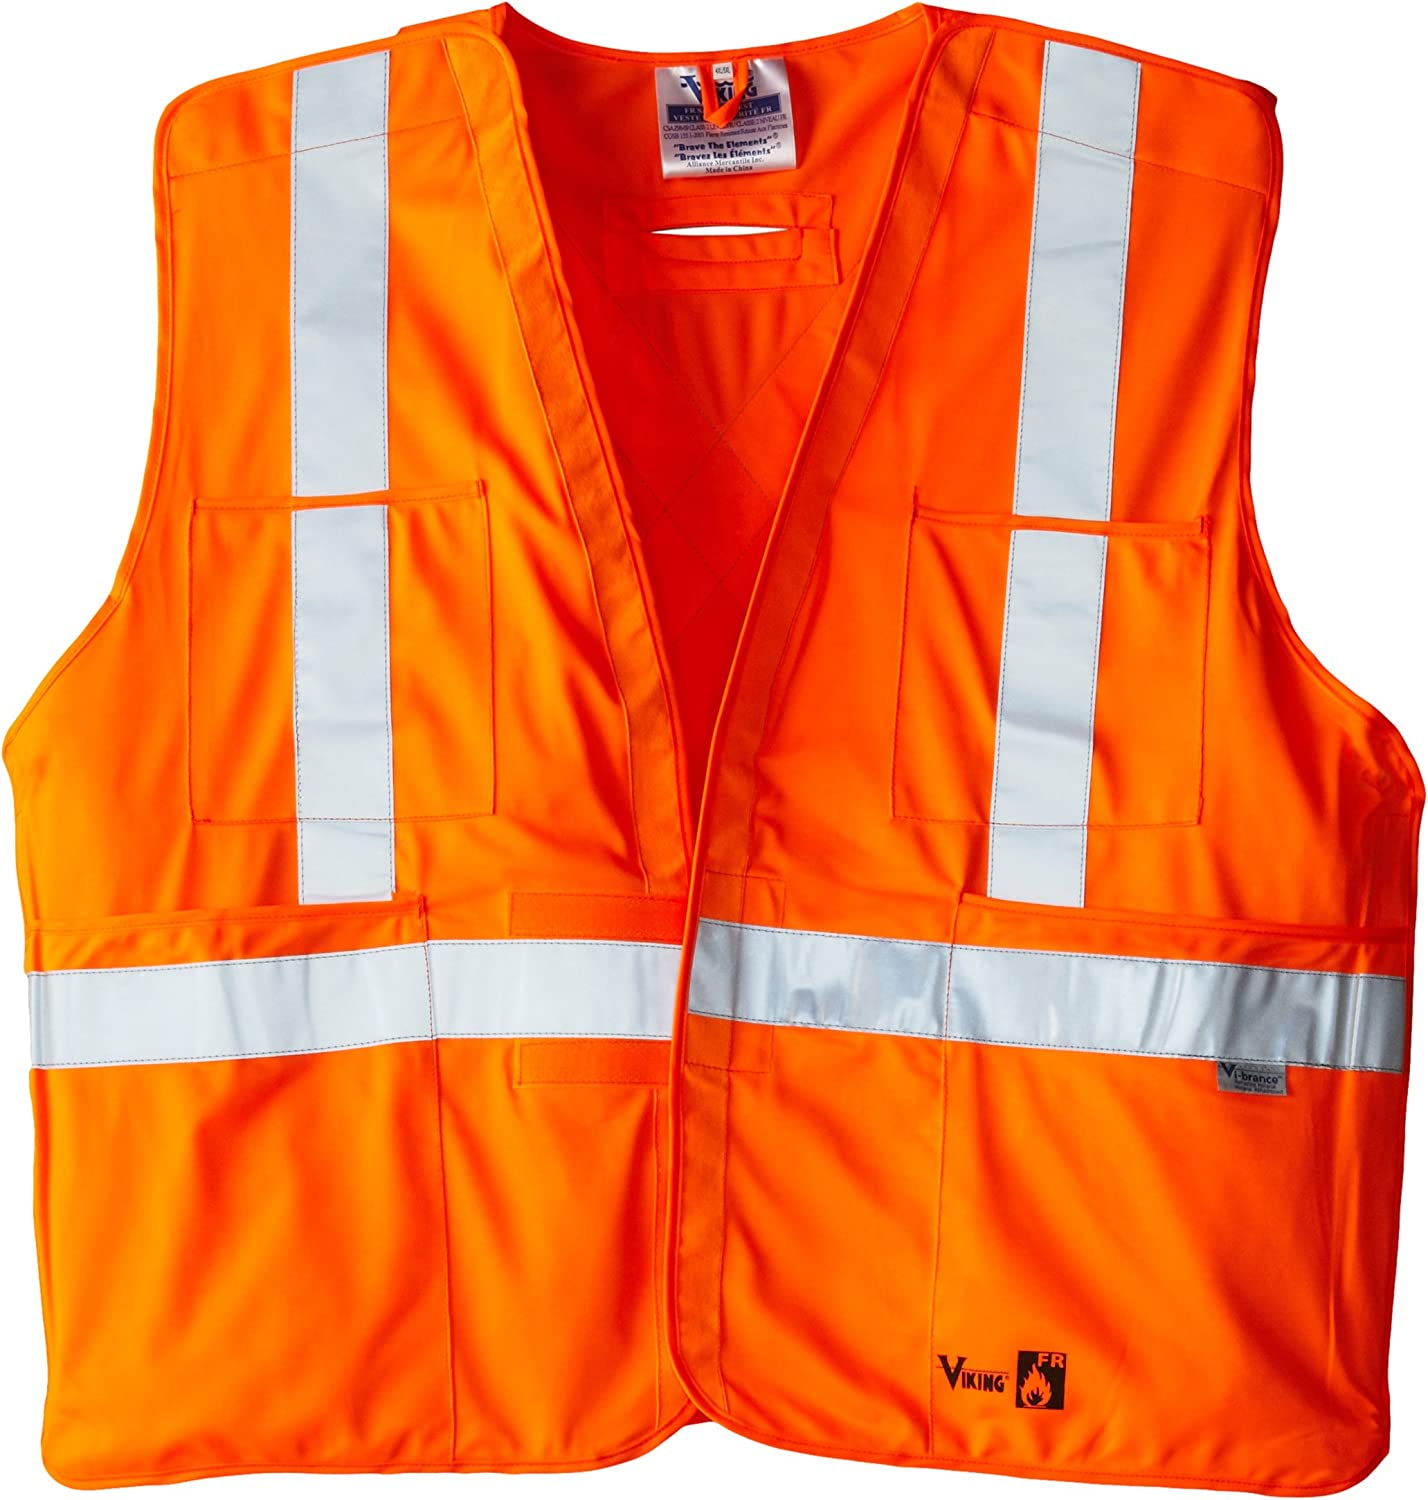 Viking FR Flame Resistant Reflective Vest: Clothing